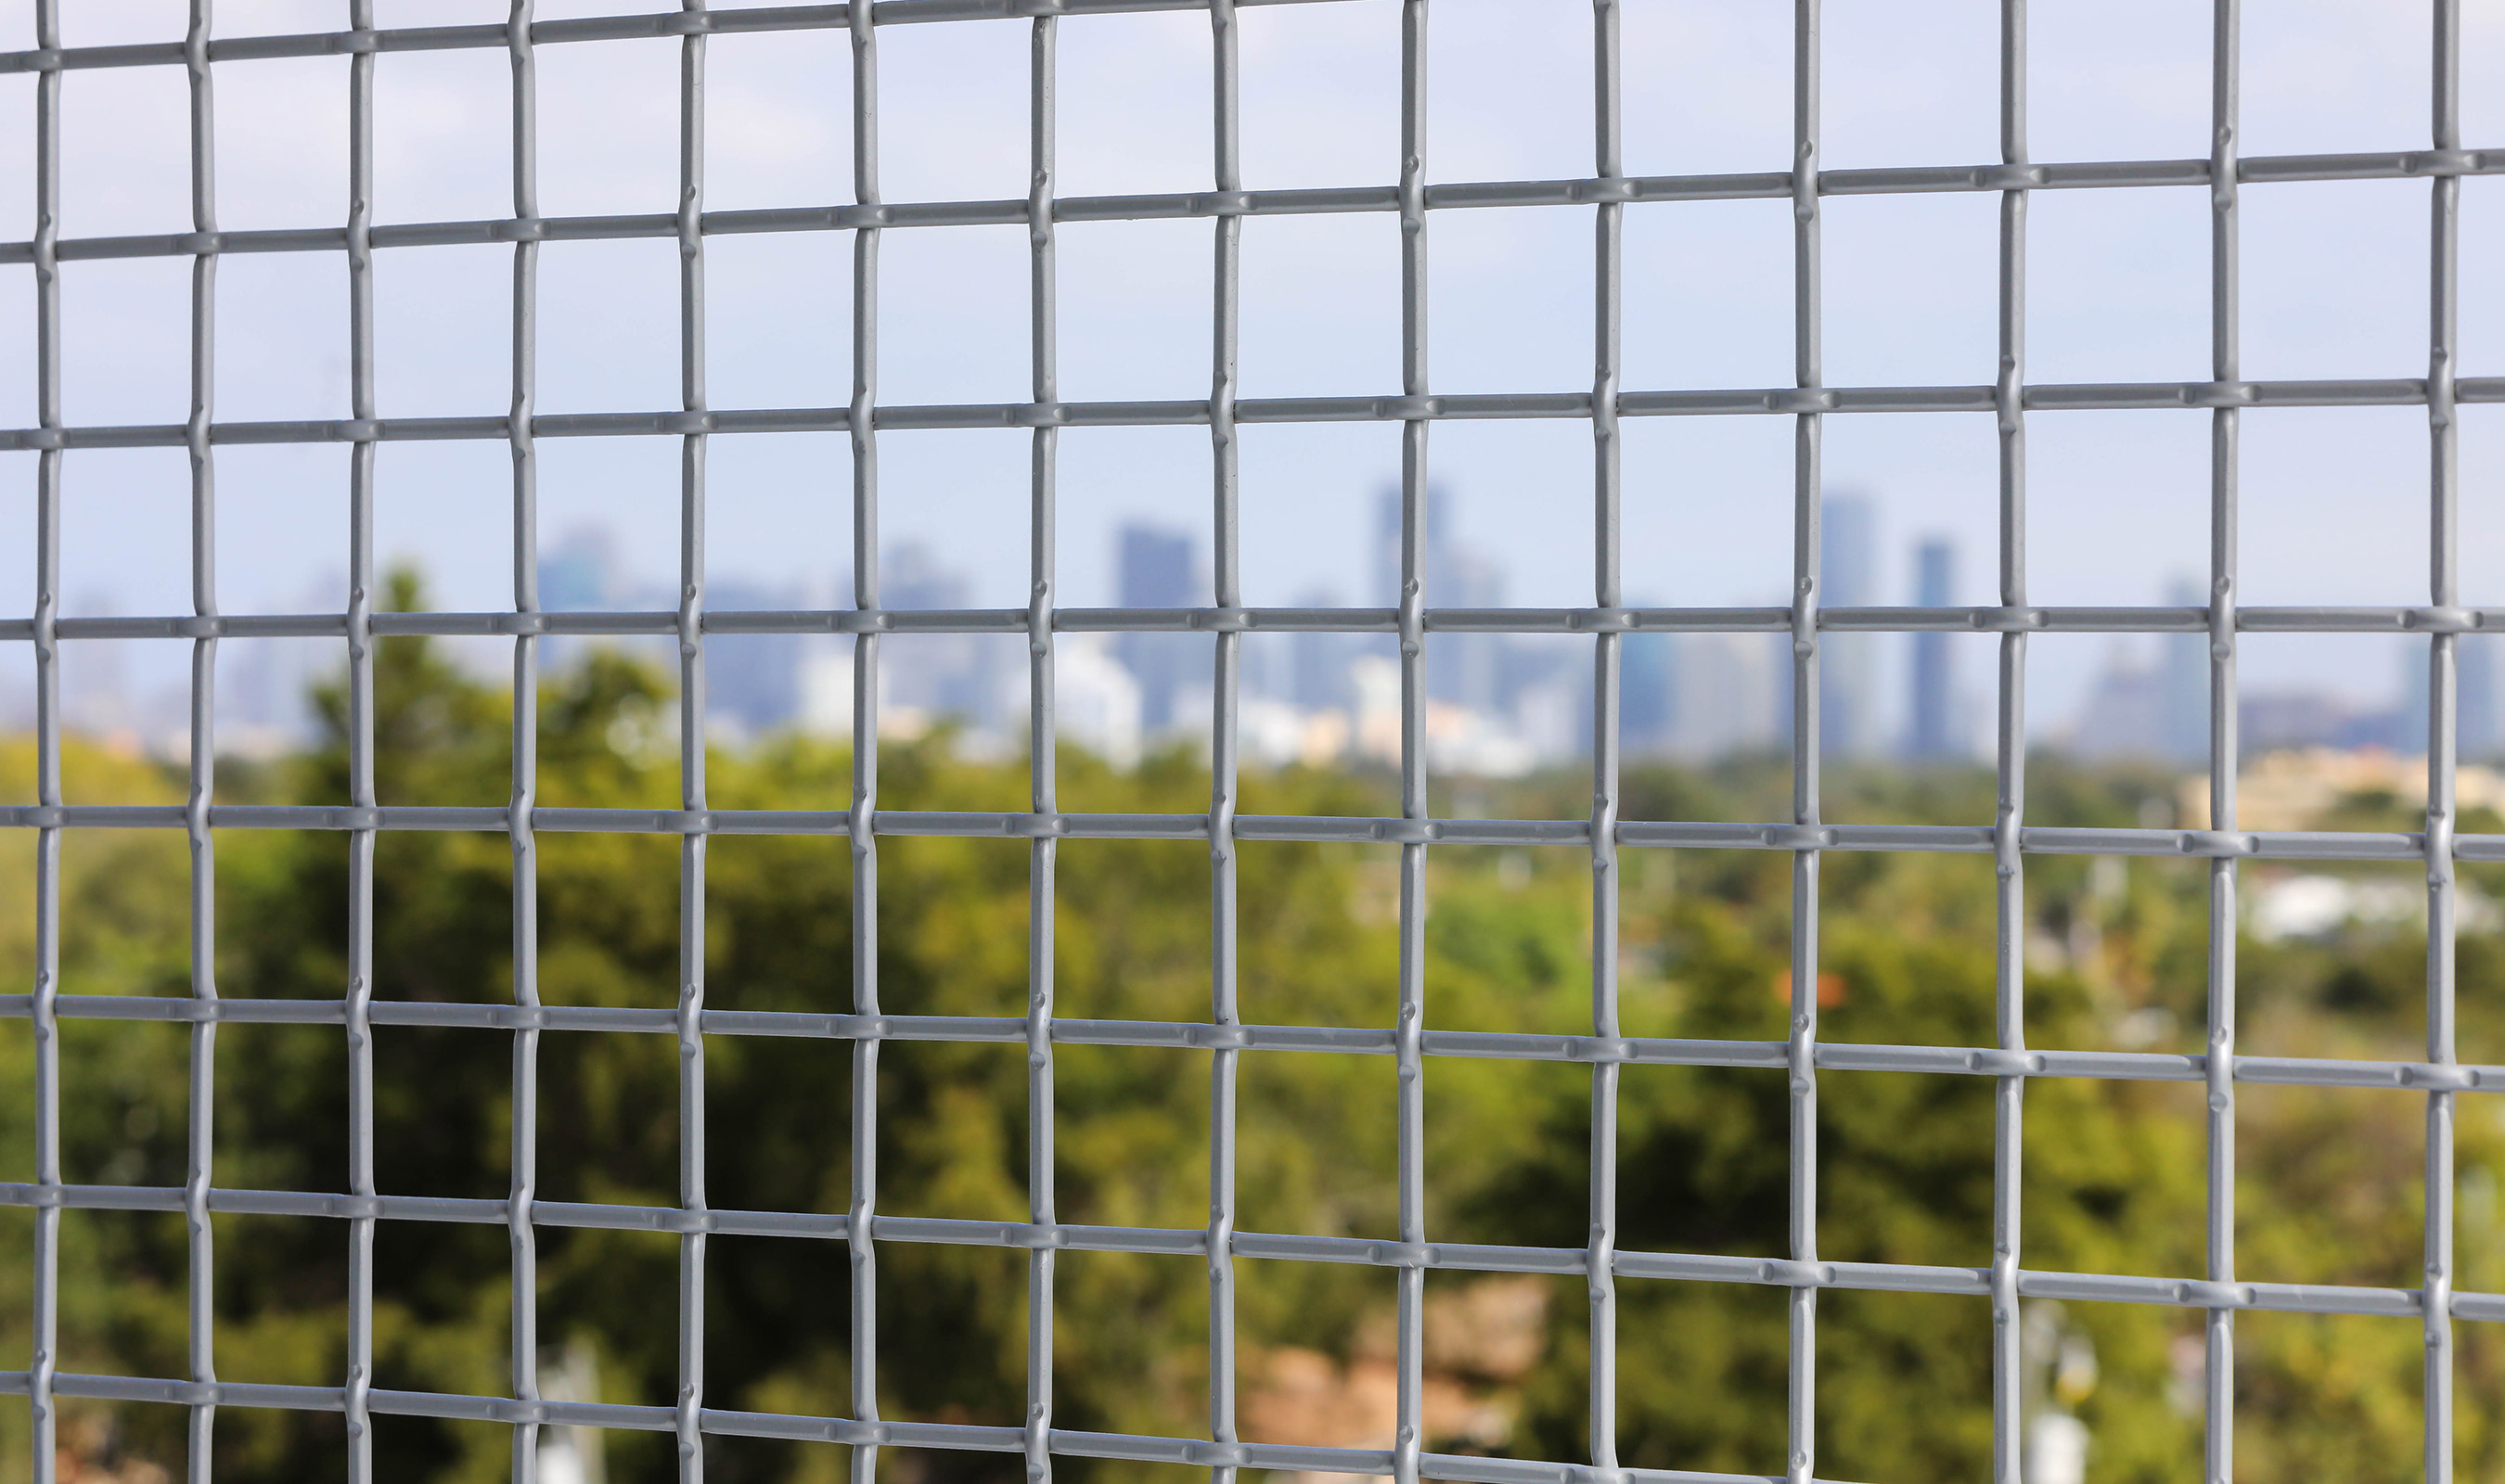 The large percent open area of Banker Wire's L-64 woven wire mesh pattern allows for uninterrupted views of the Miami skyline.